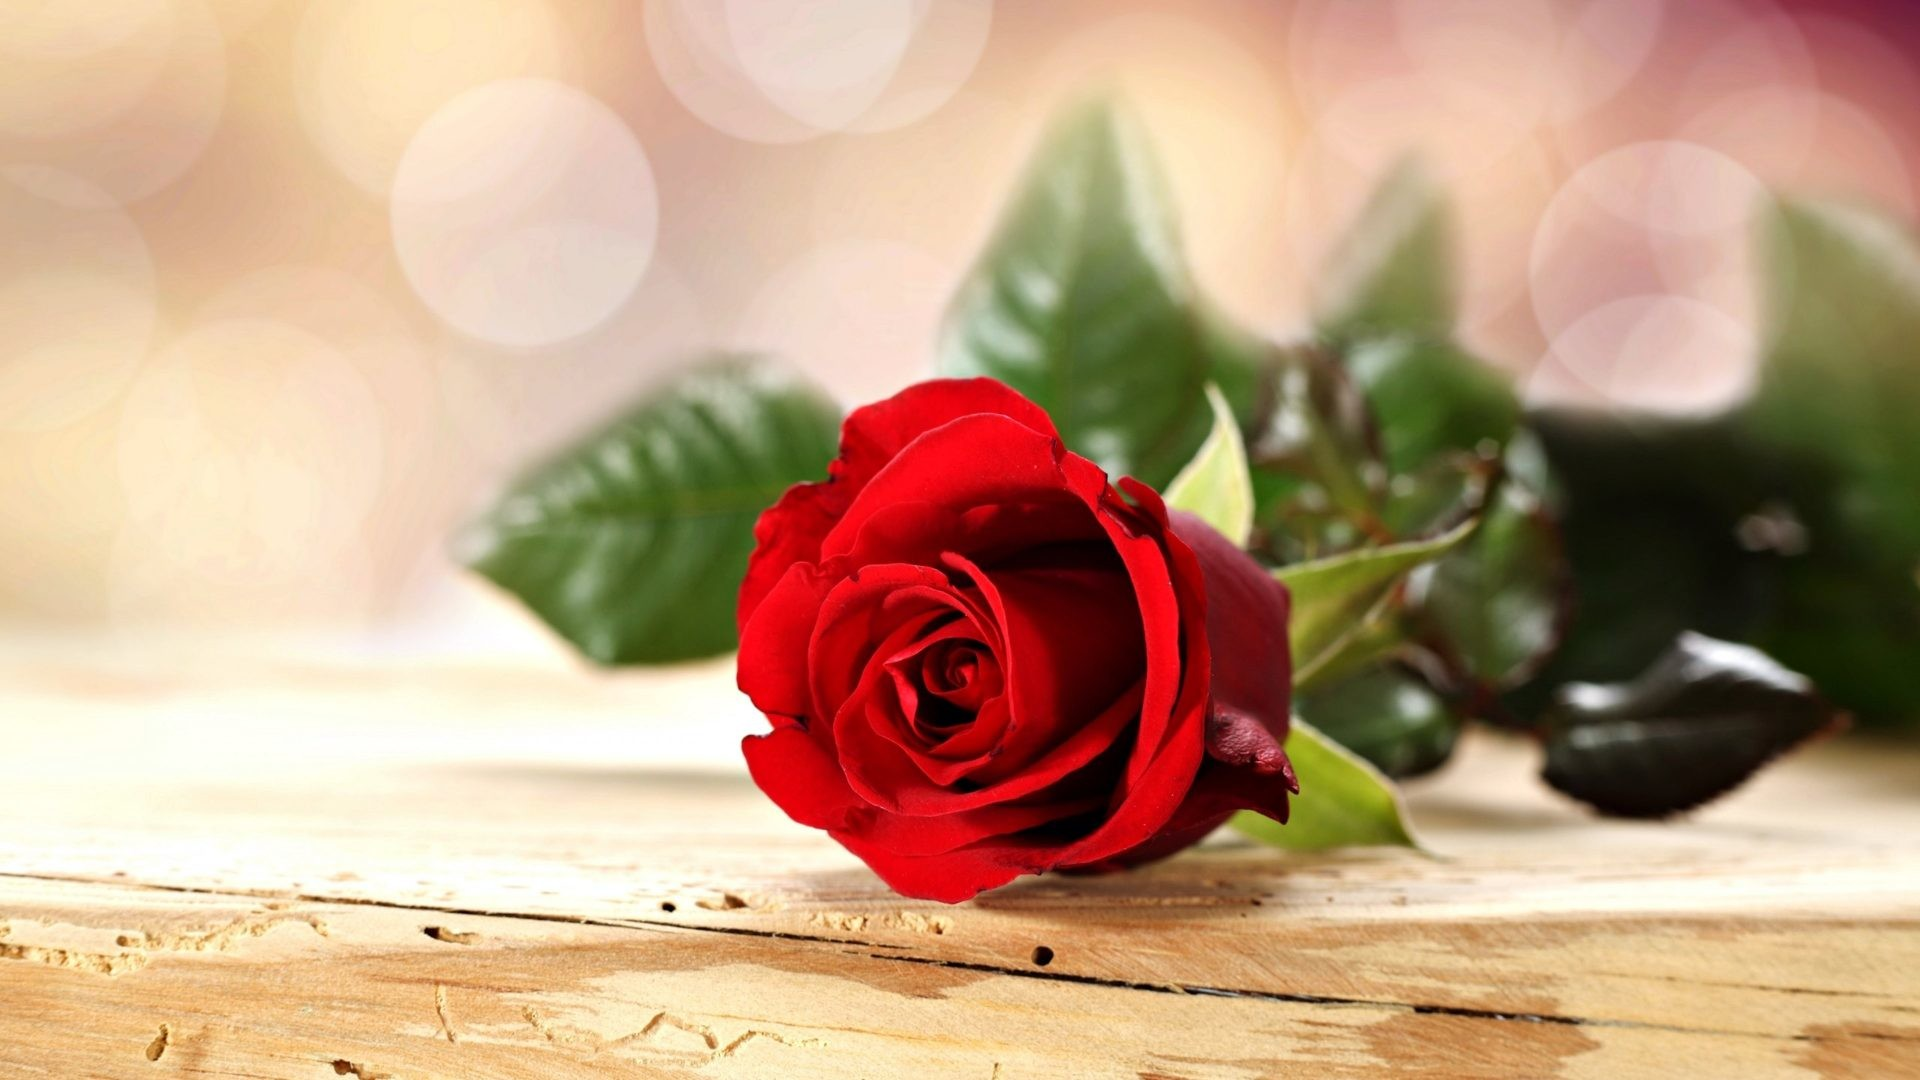 Red Rose Love Wallpaper 52 Pictures